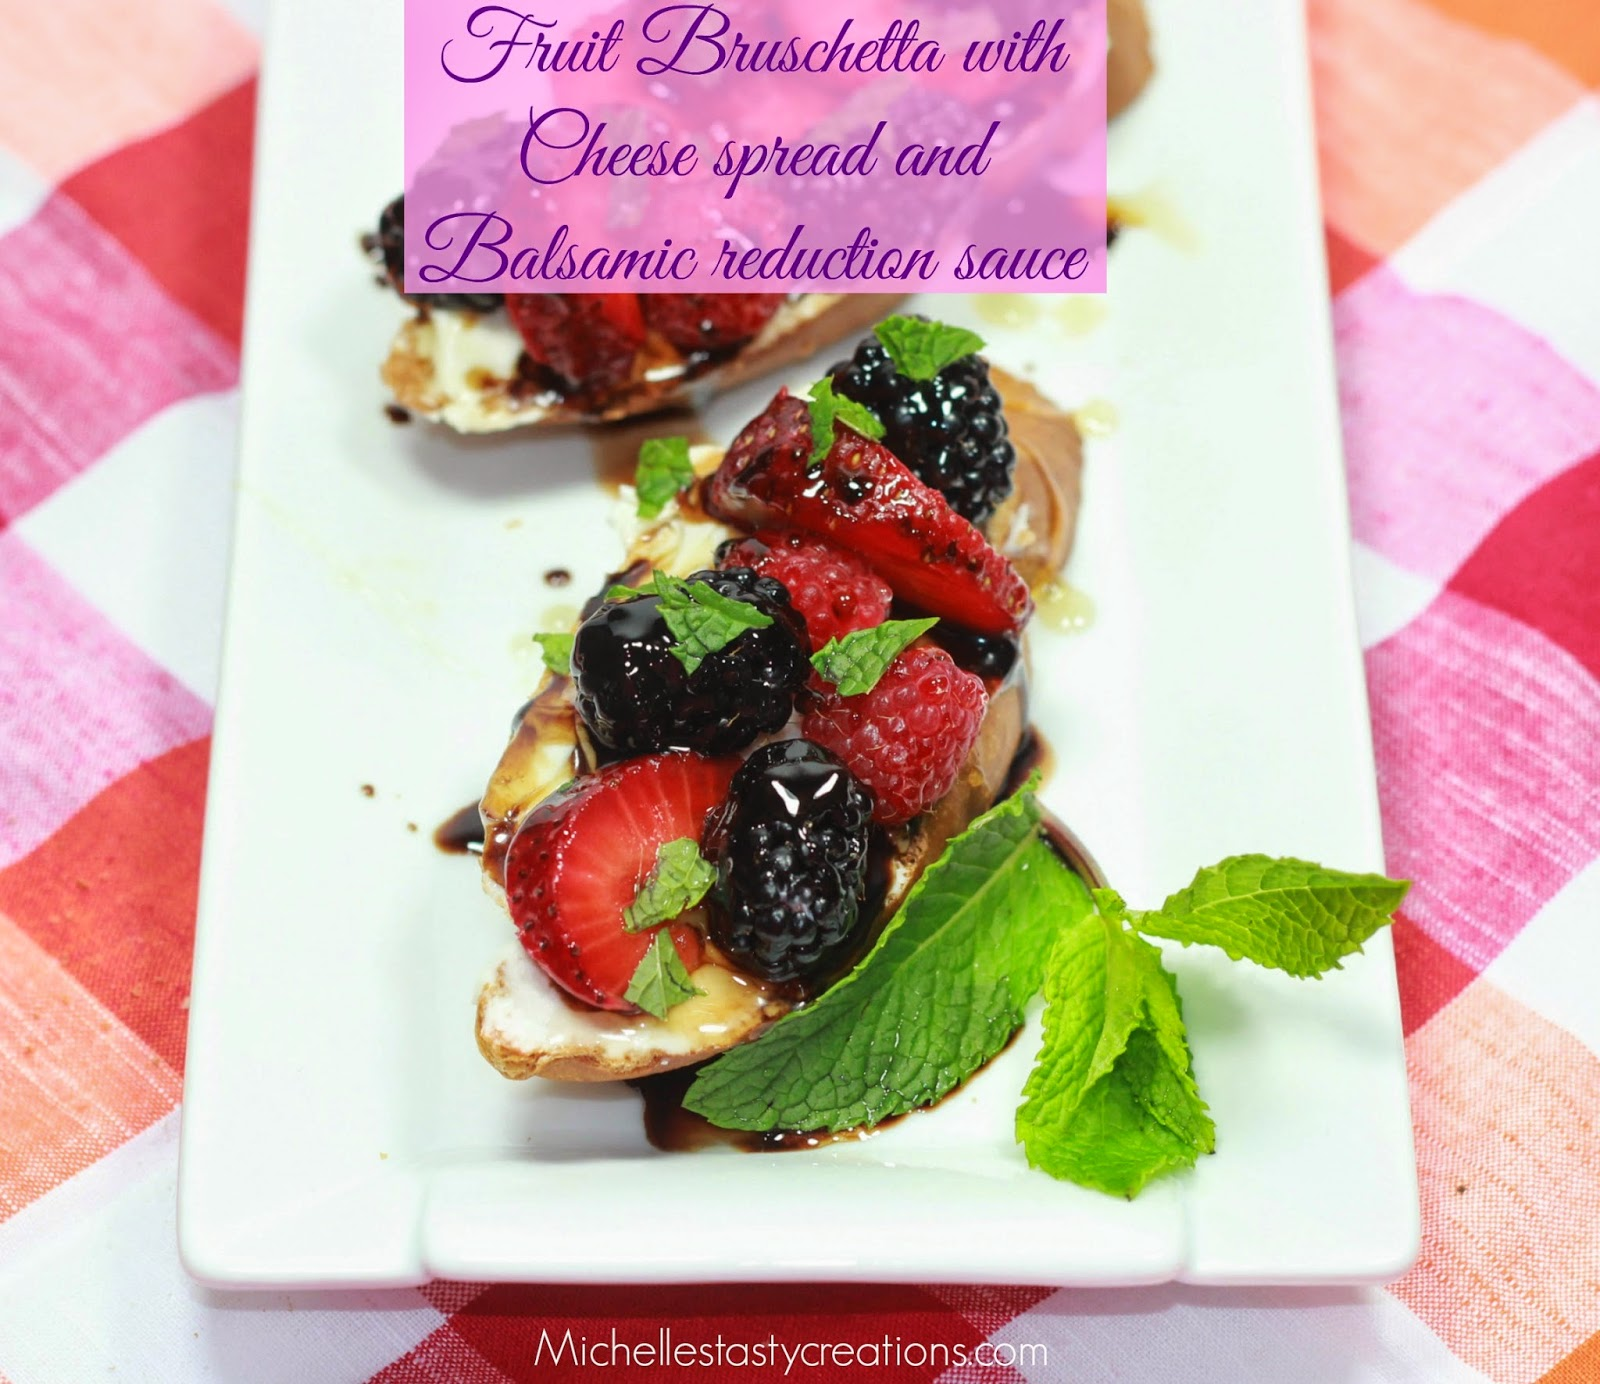 ... : Fruit Bruschetta with Cheese Spread and Balsamic Reduction Sauce